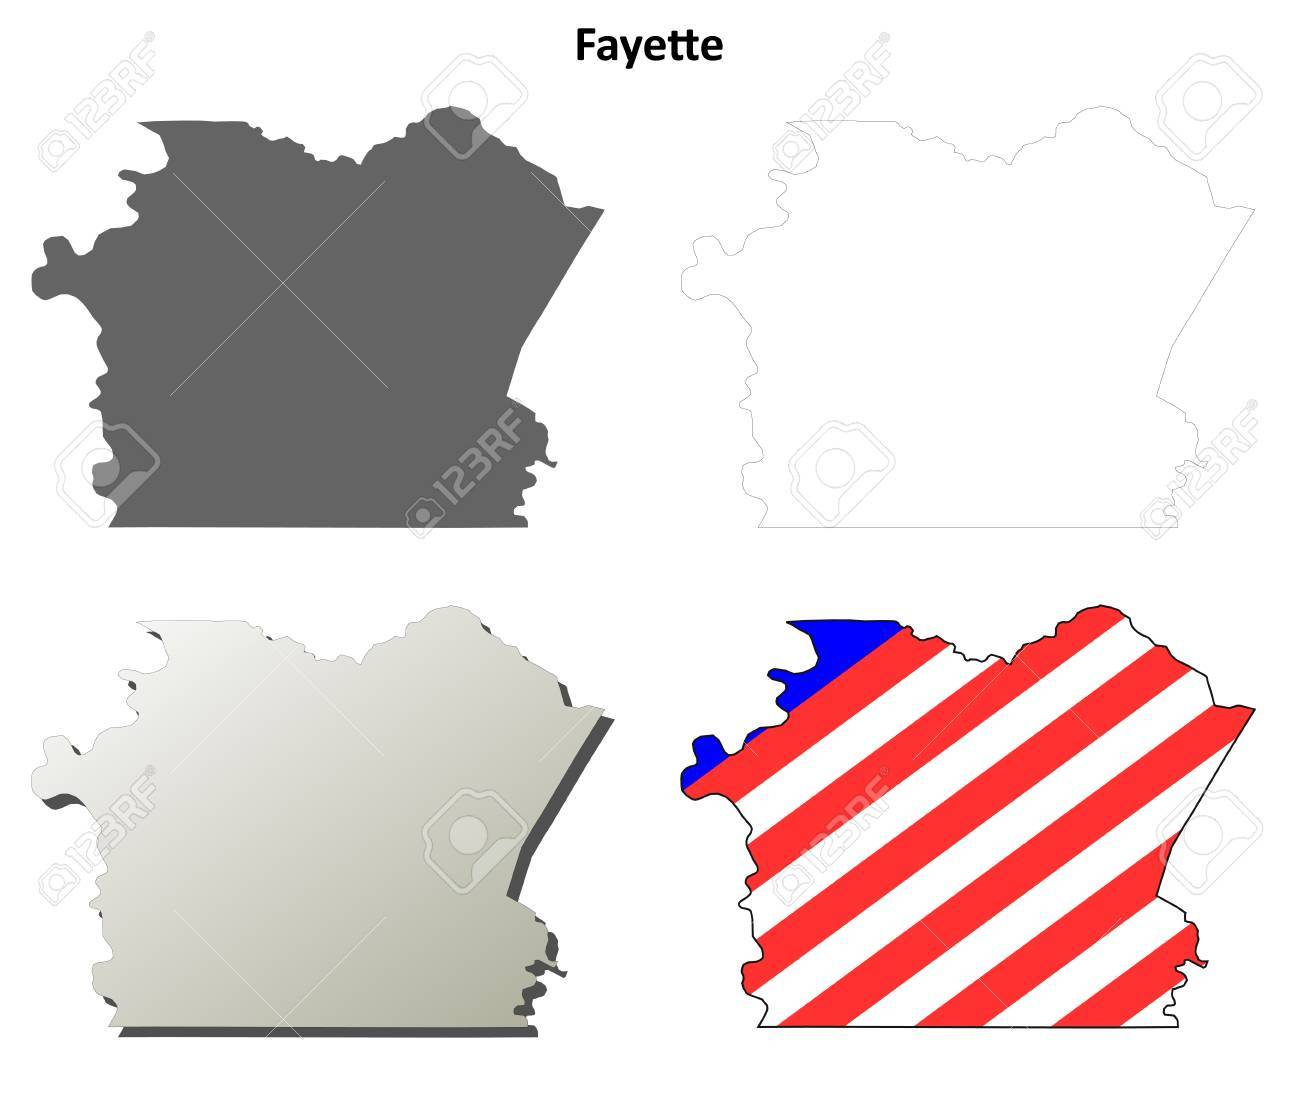 Image of: Fayette County Pennsylvania Blank Outline Map Set Royalty Free Cliparts Vectors And Stock Illustration Image 56393517